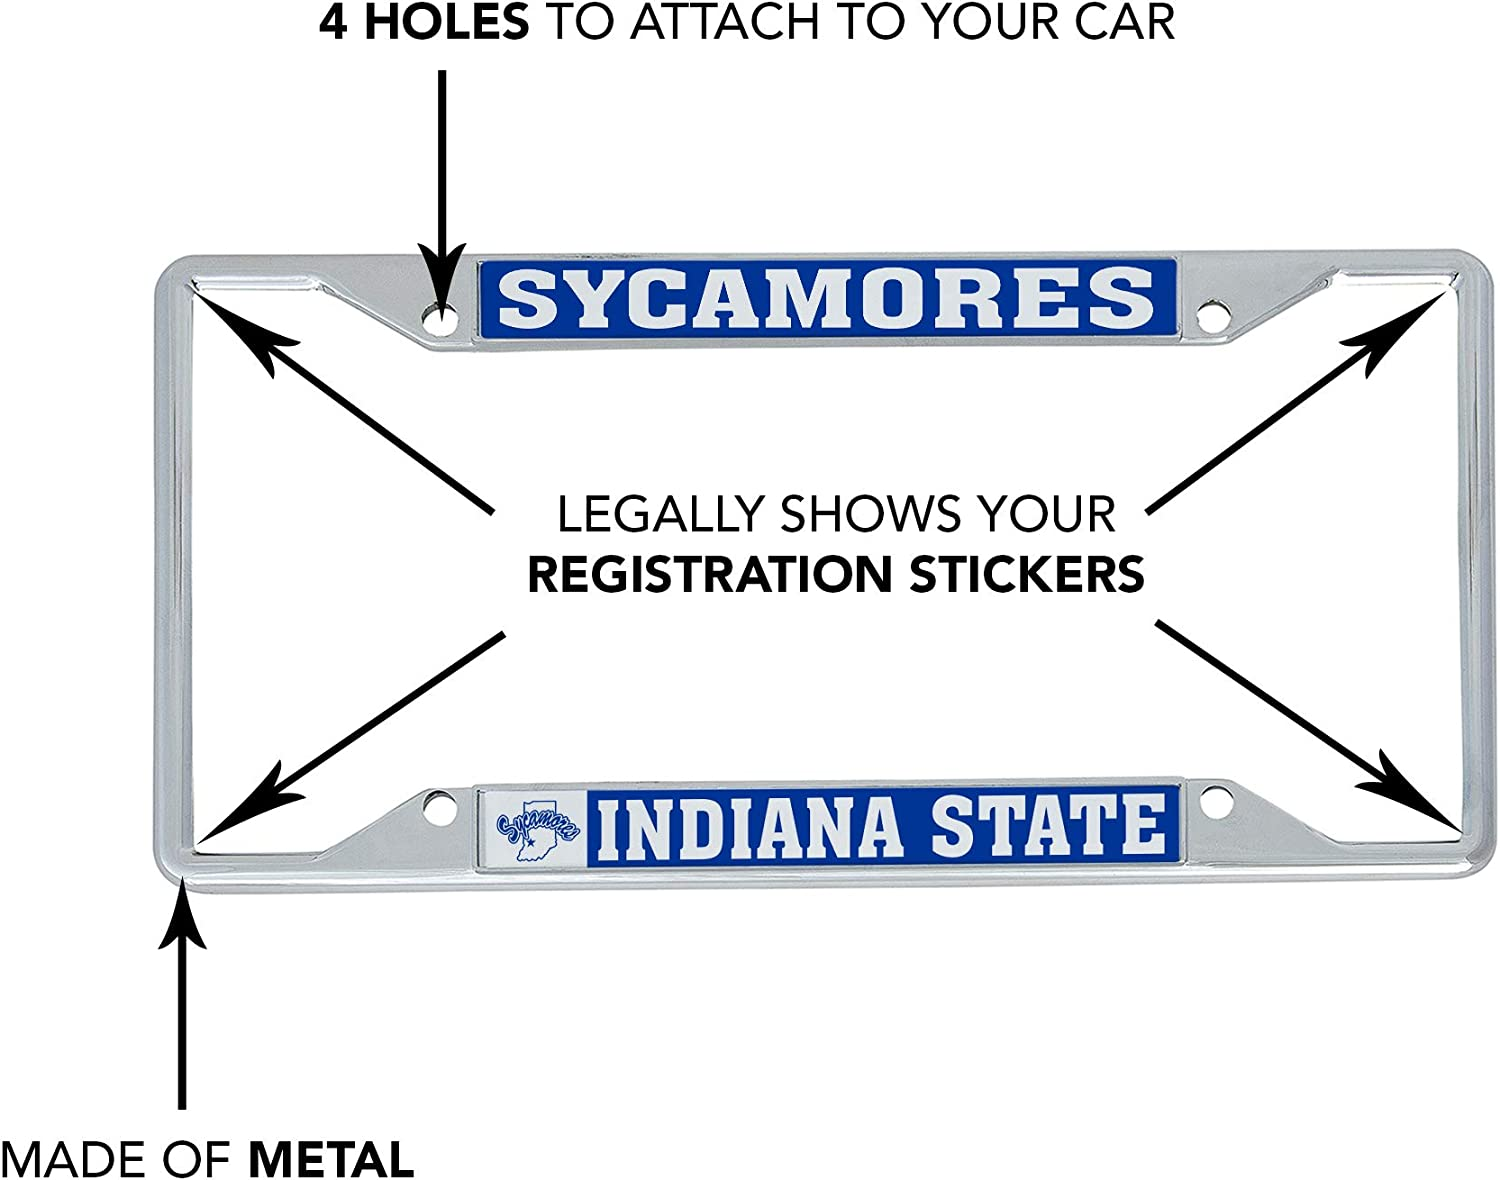 Mascot Desert Cactus Indiana State University ISU Sycamores NCAA Metal License Plate Frame for Front Back of Car Officially Licensed